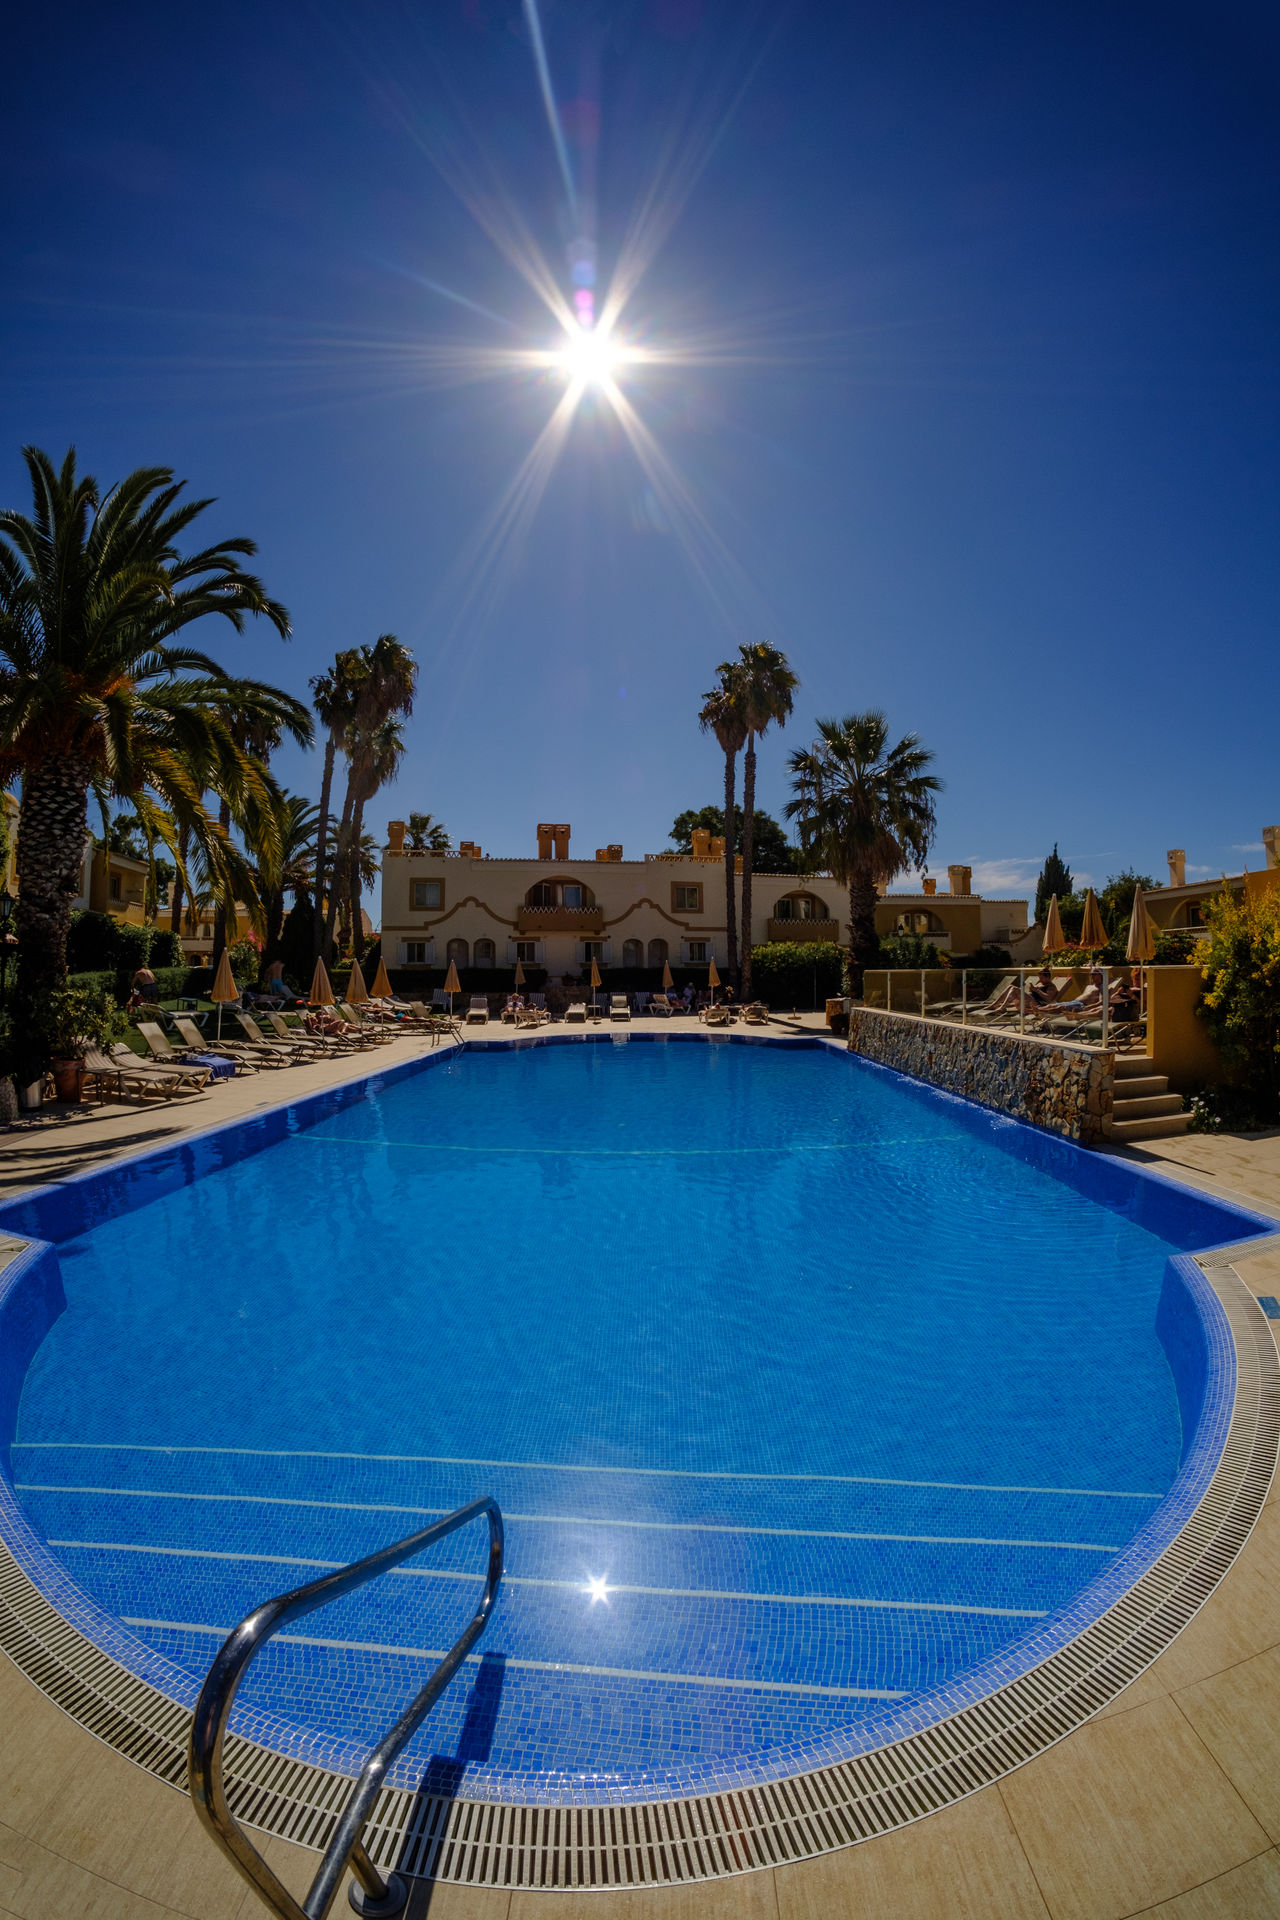 Swimming Pool Blue Sun Sunlight Palm Tree Poolside Lens Flare Tourist Resort Sky Summer Xpro2 Carvoeiro Fujifilm Algarve Fujifilm_xseries Portugal X-PRO2 Photography Travel Destinations Xseries Samyang8mm Samyang Pestana